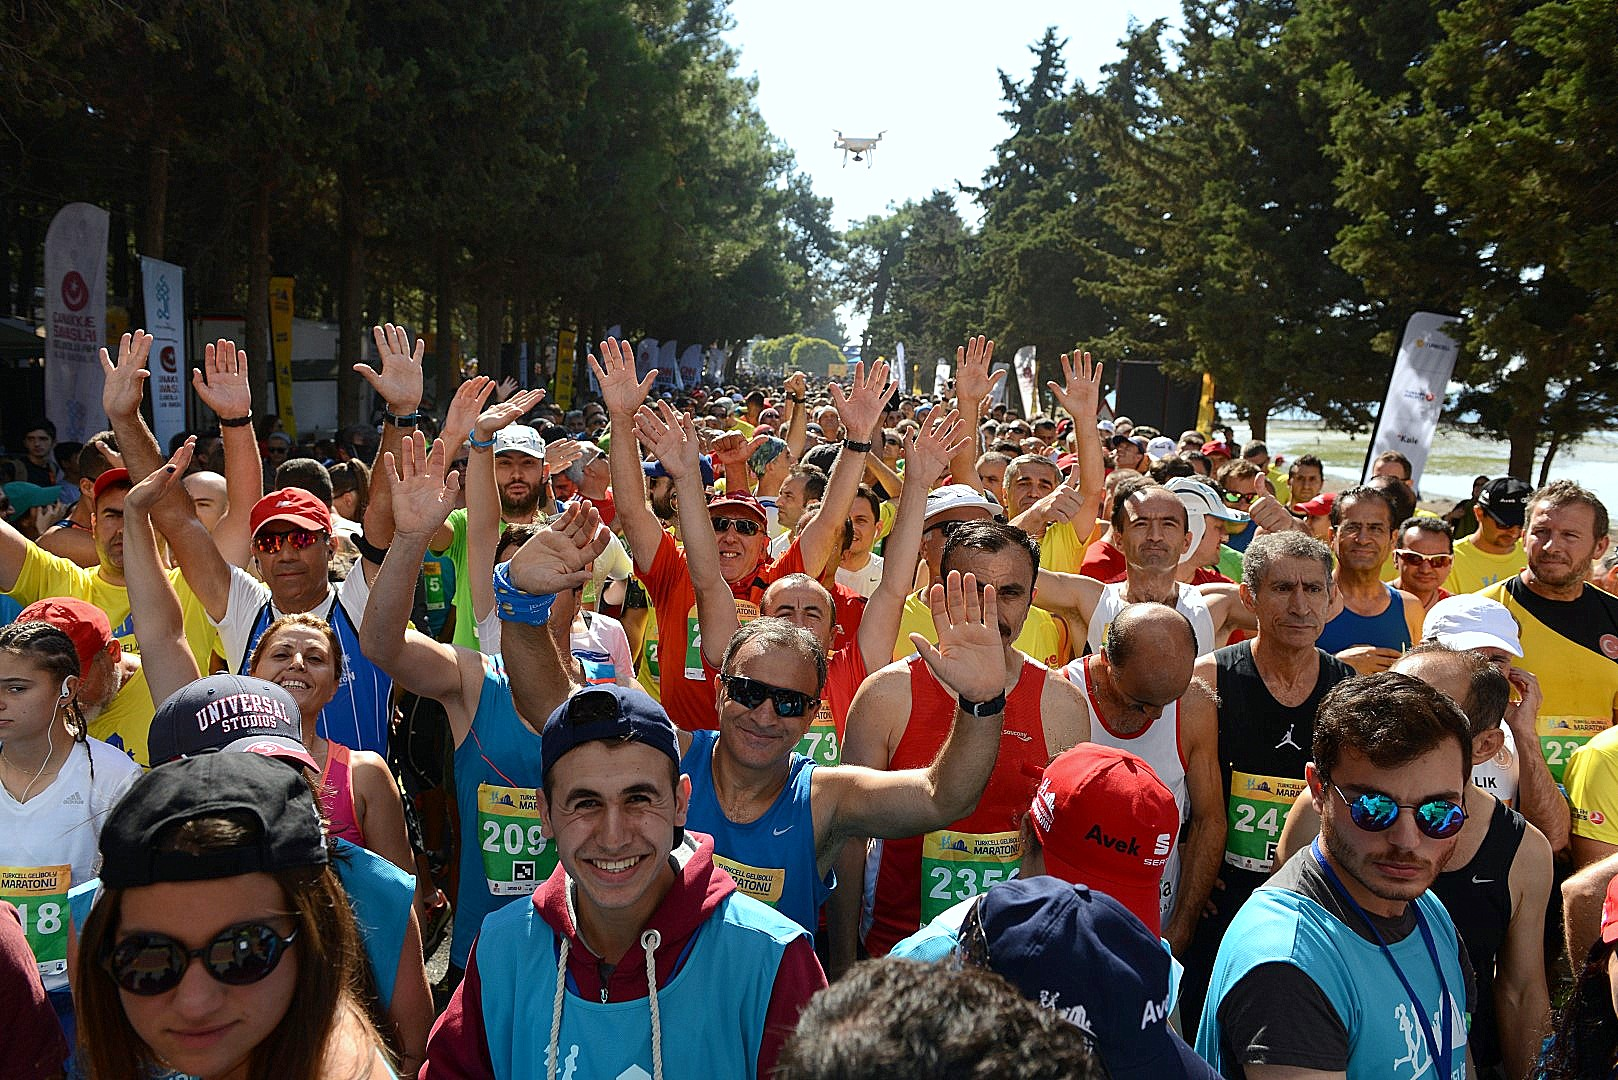 gallipoli marathon